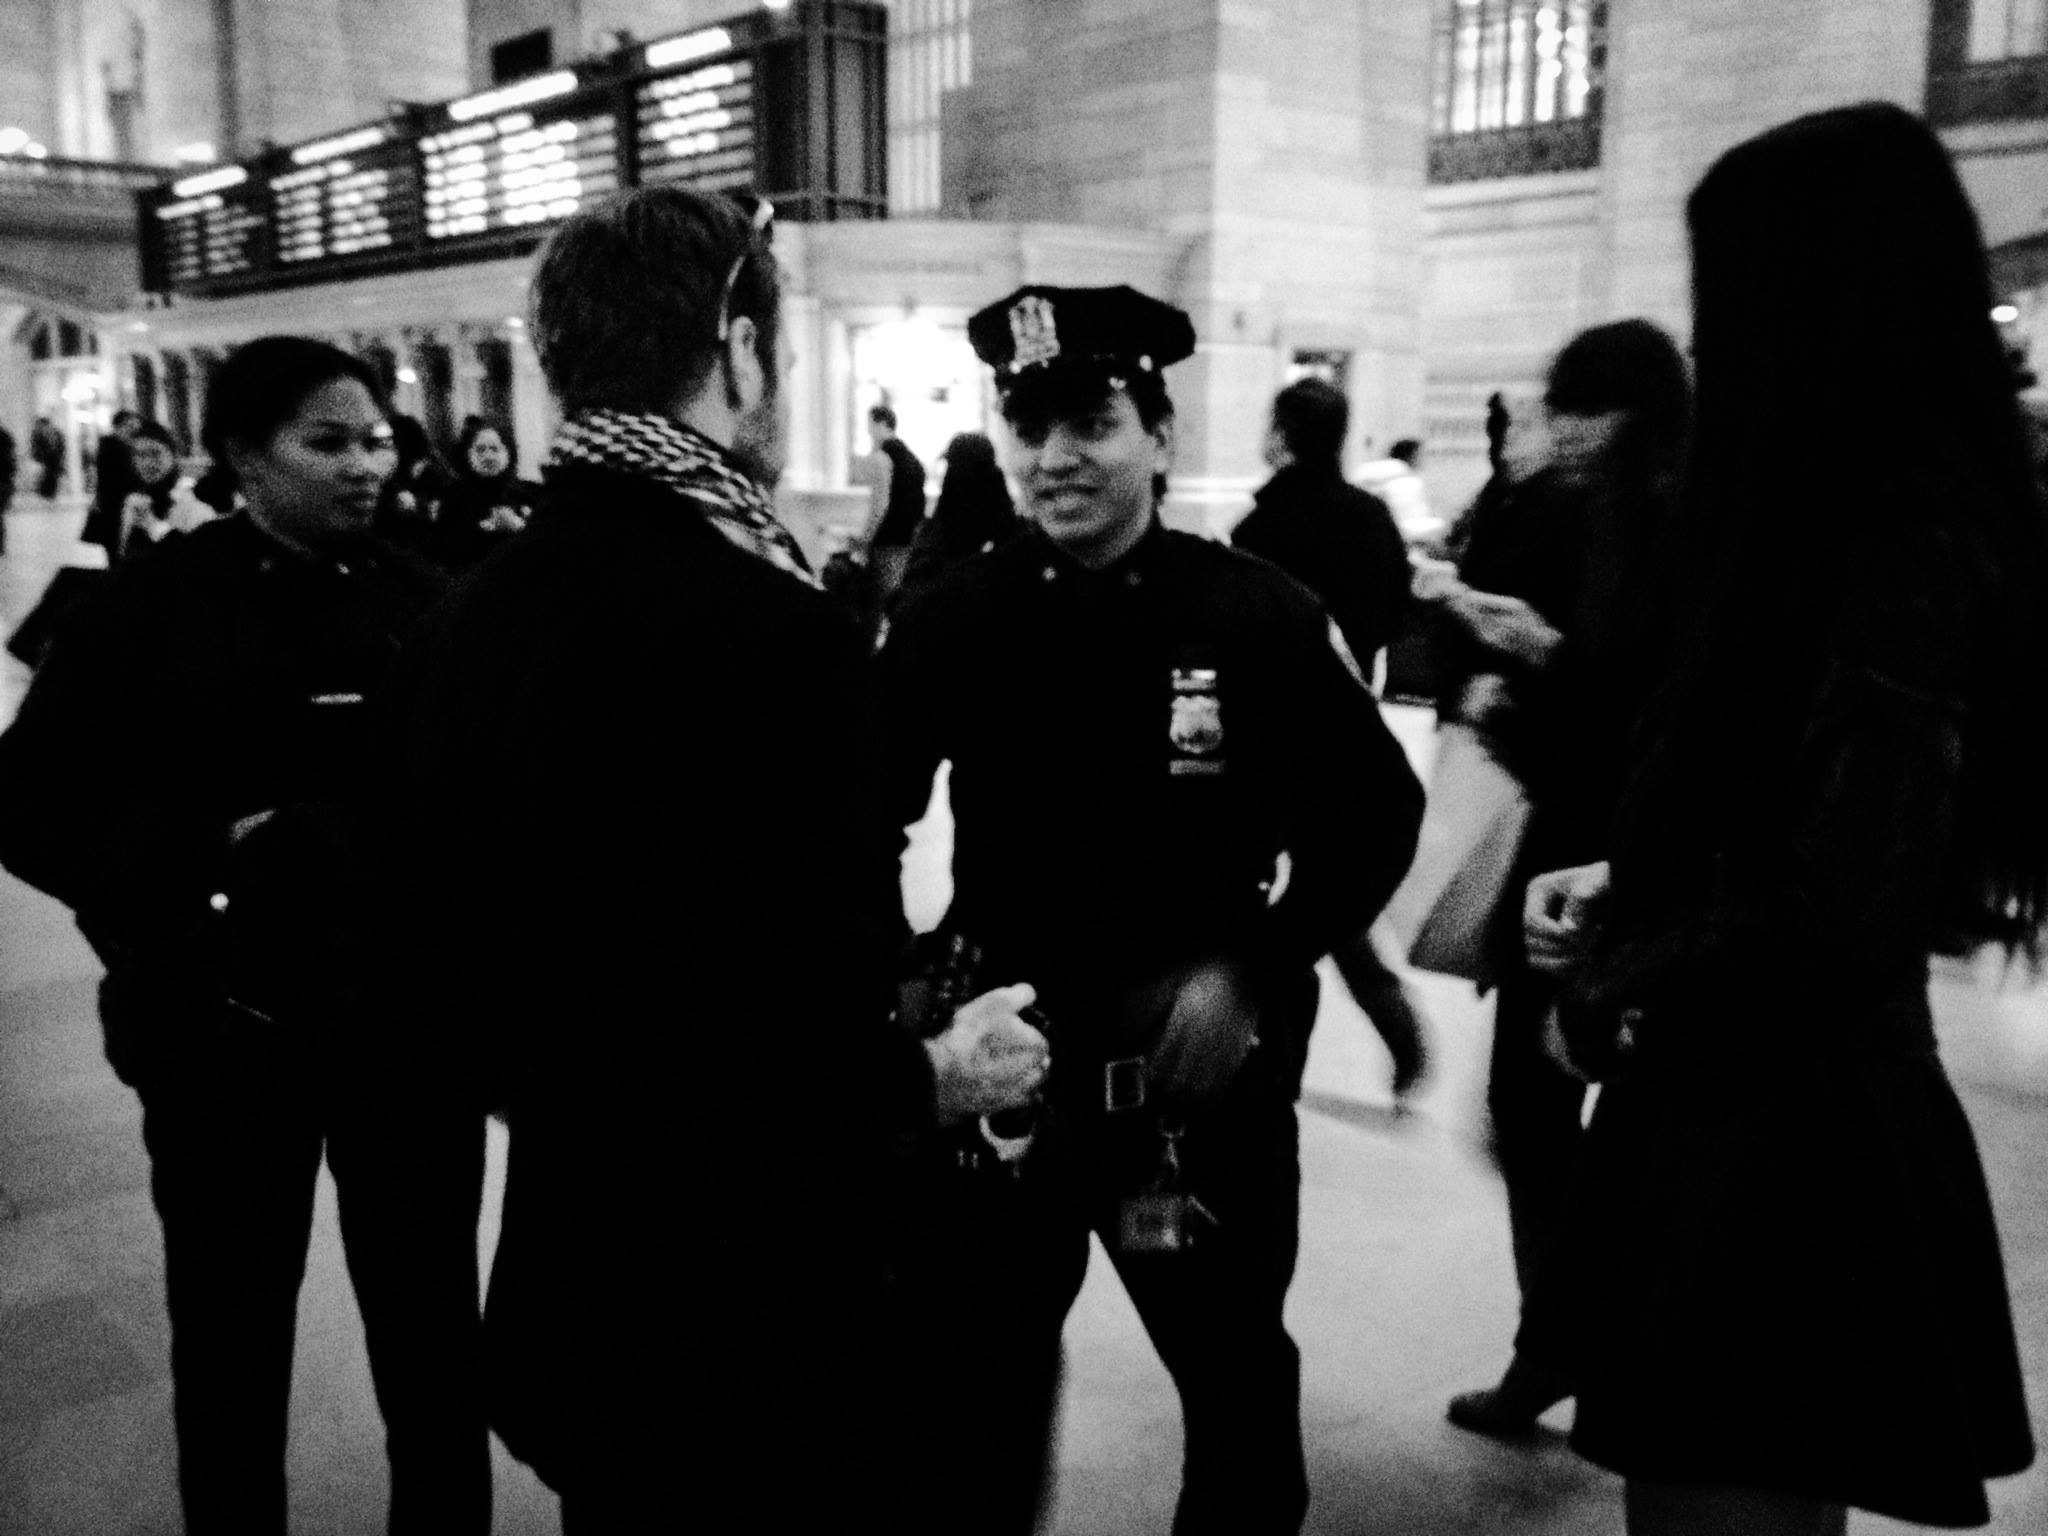 Allen Henson and Serina Thai talking to officers at Grand Central